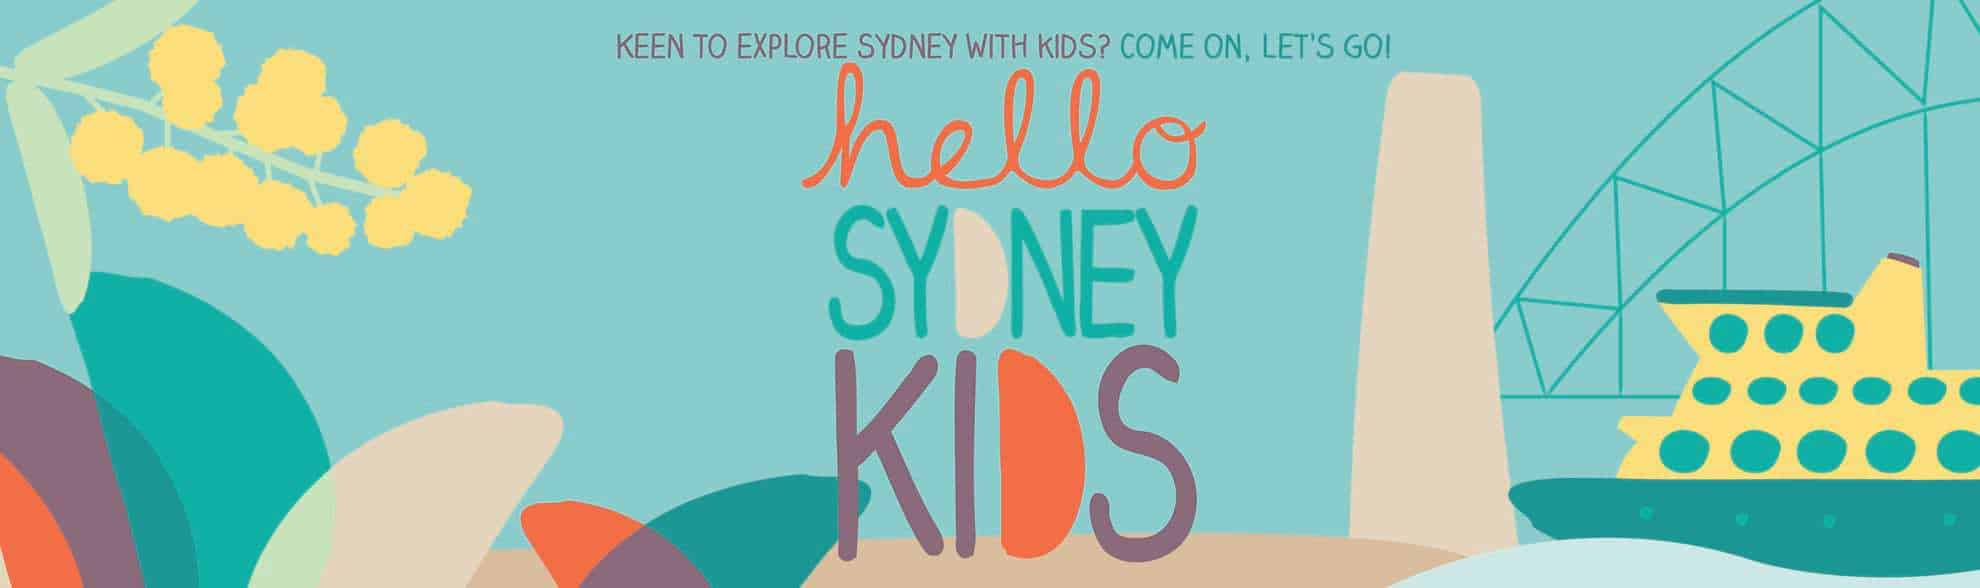 Hello Sydney Kids - Explore family-friendly Sydney